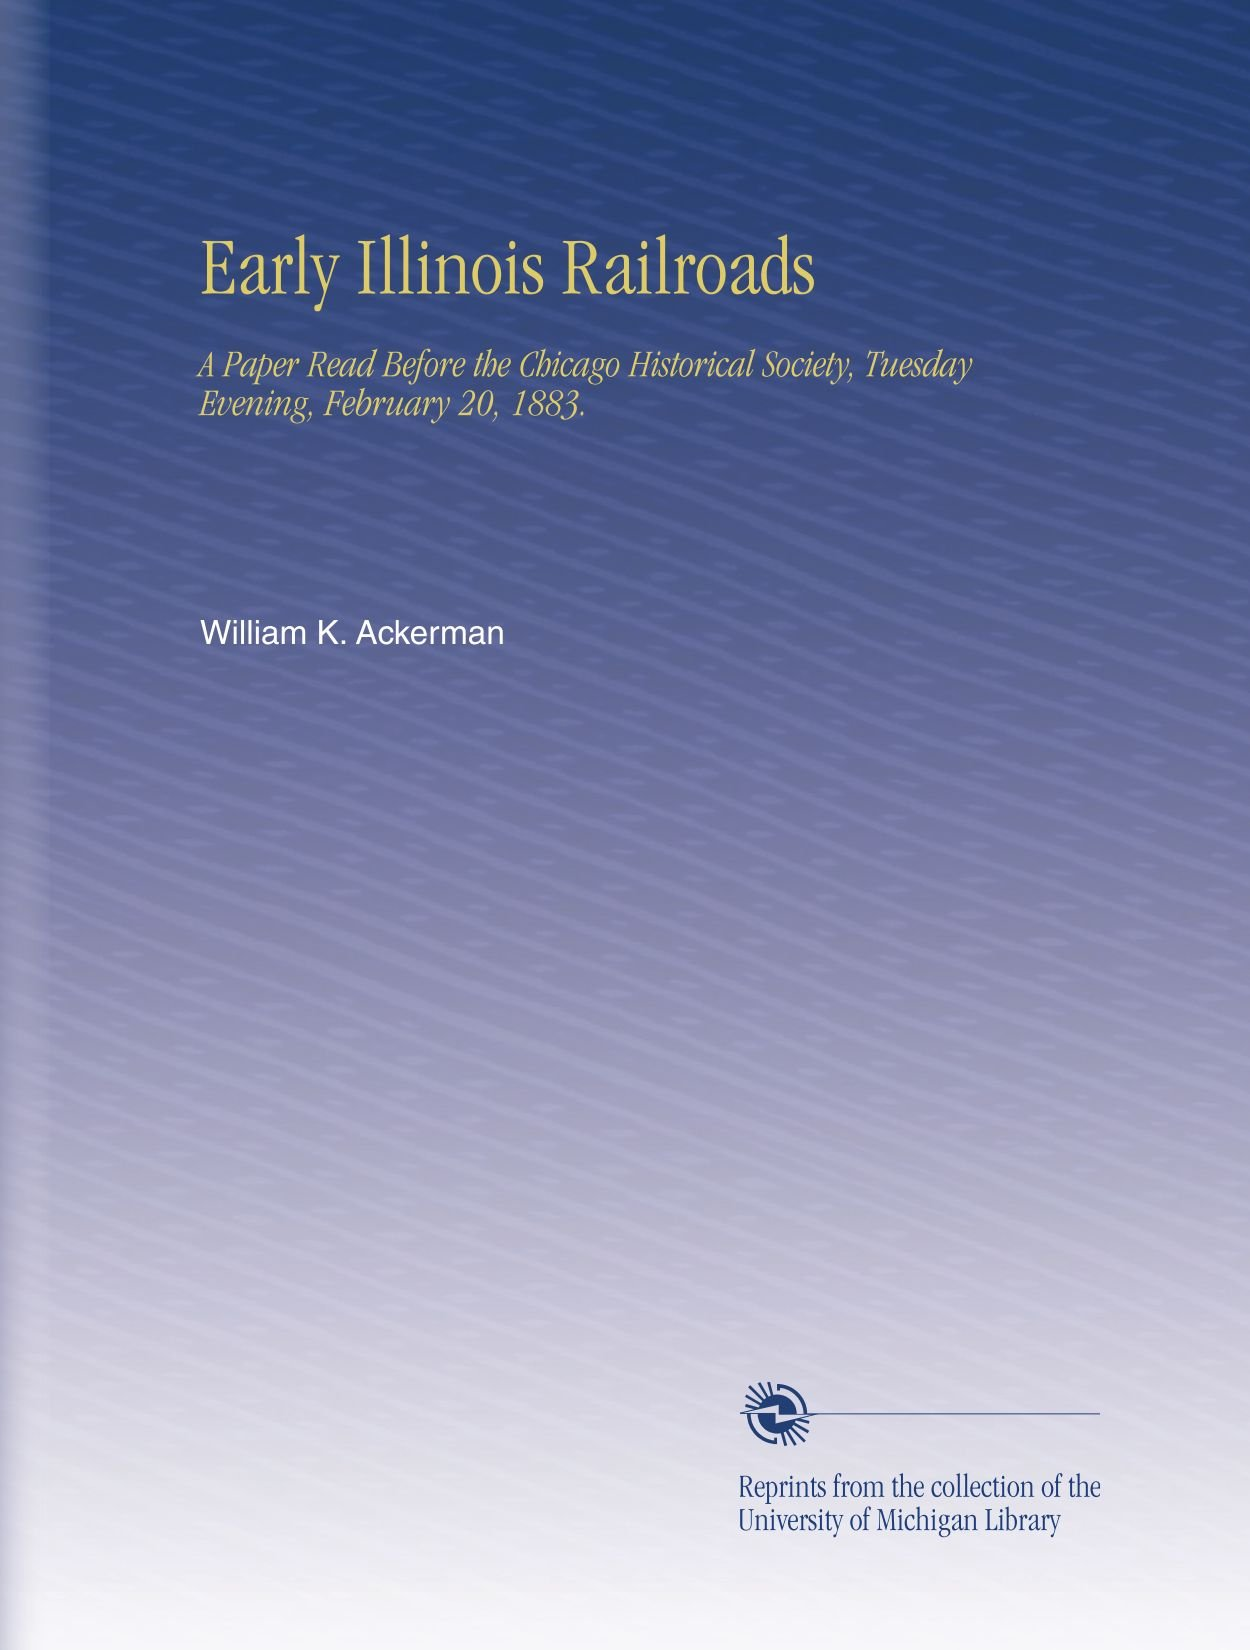 Early Illinois Railroads: A Paper Read Before the Chicago Historical Society, Tuesday Evening, February 20, 1883. ebook